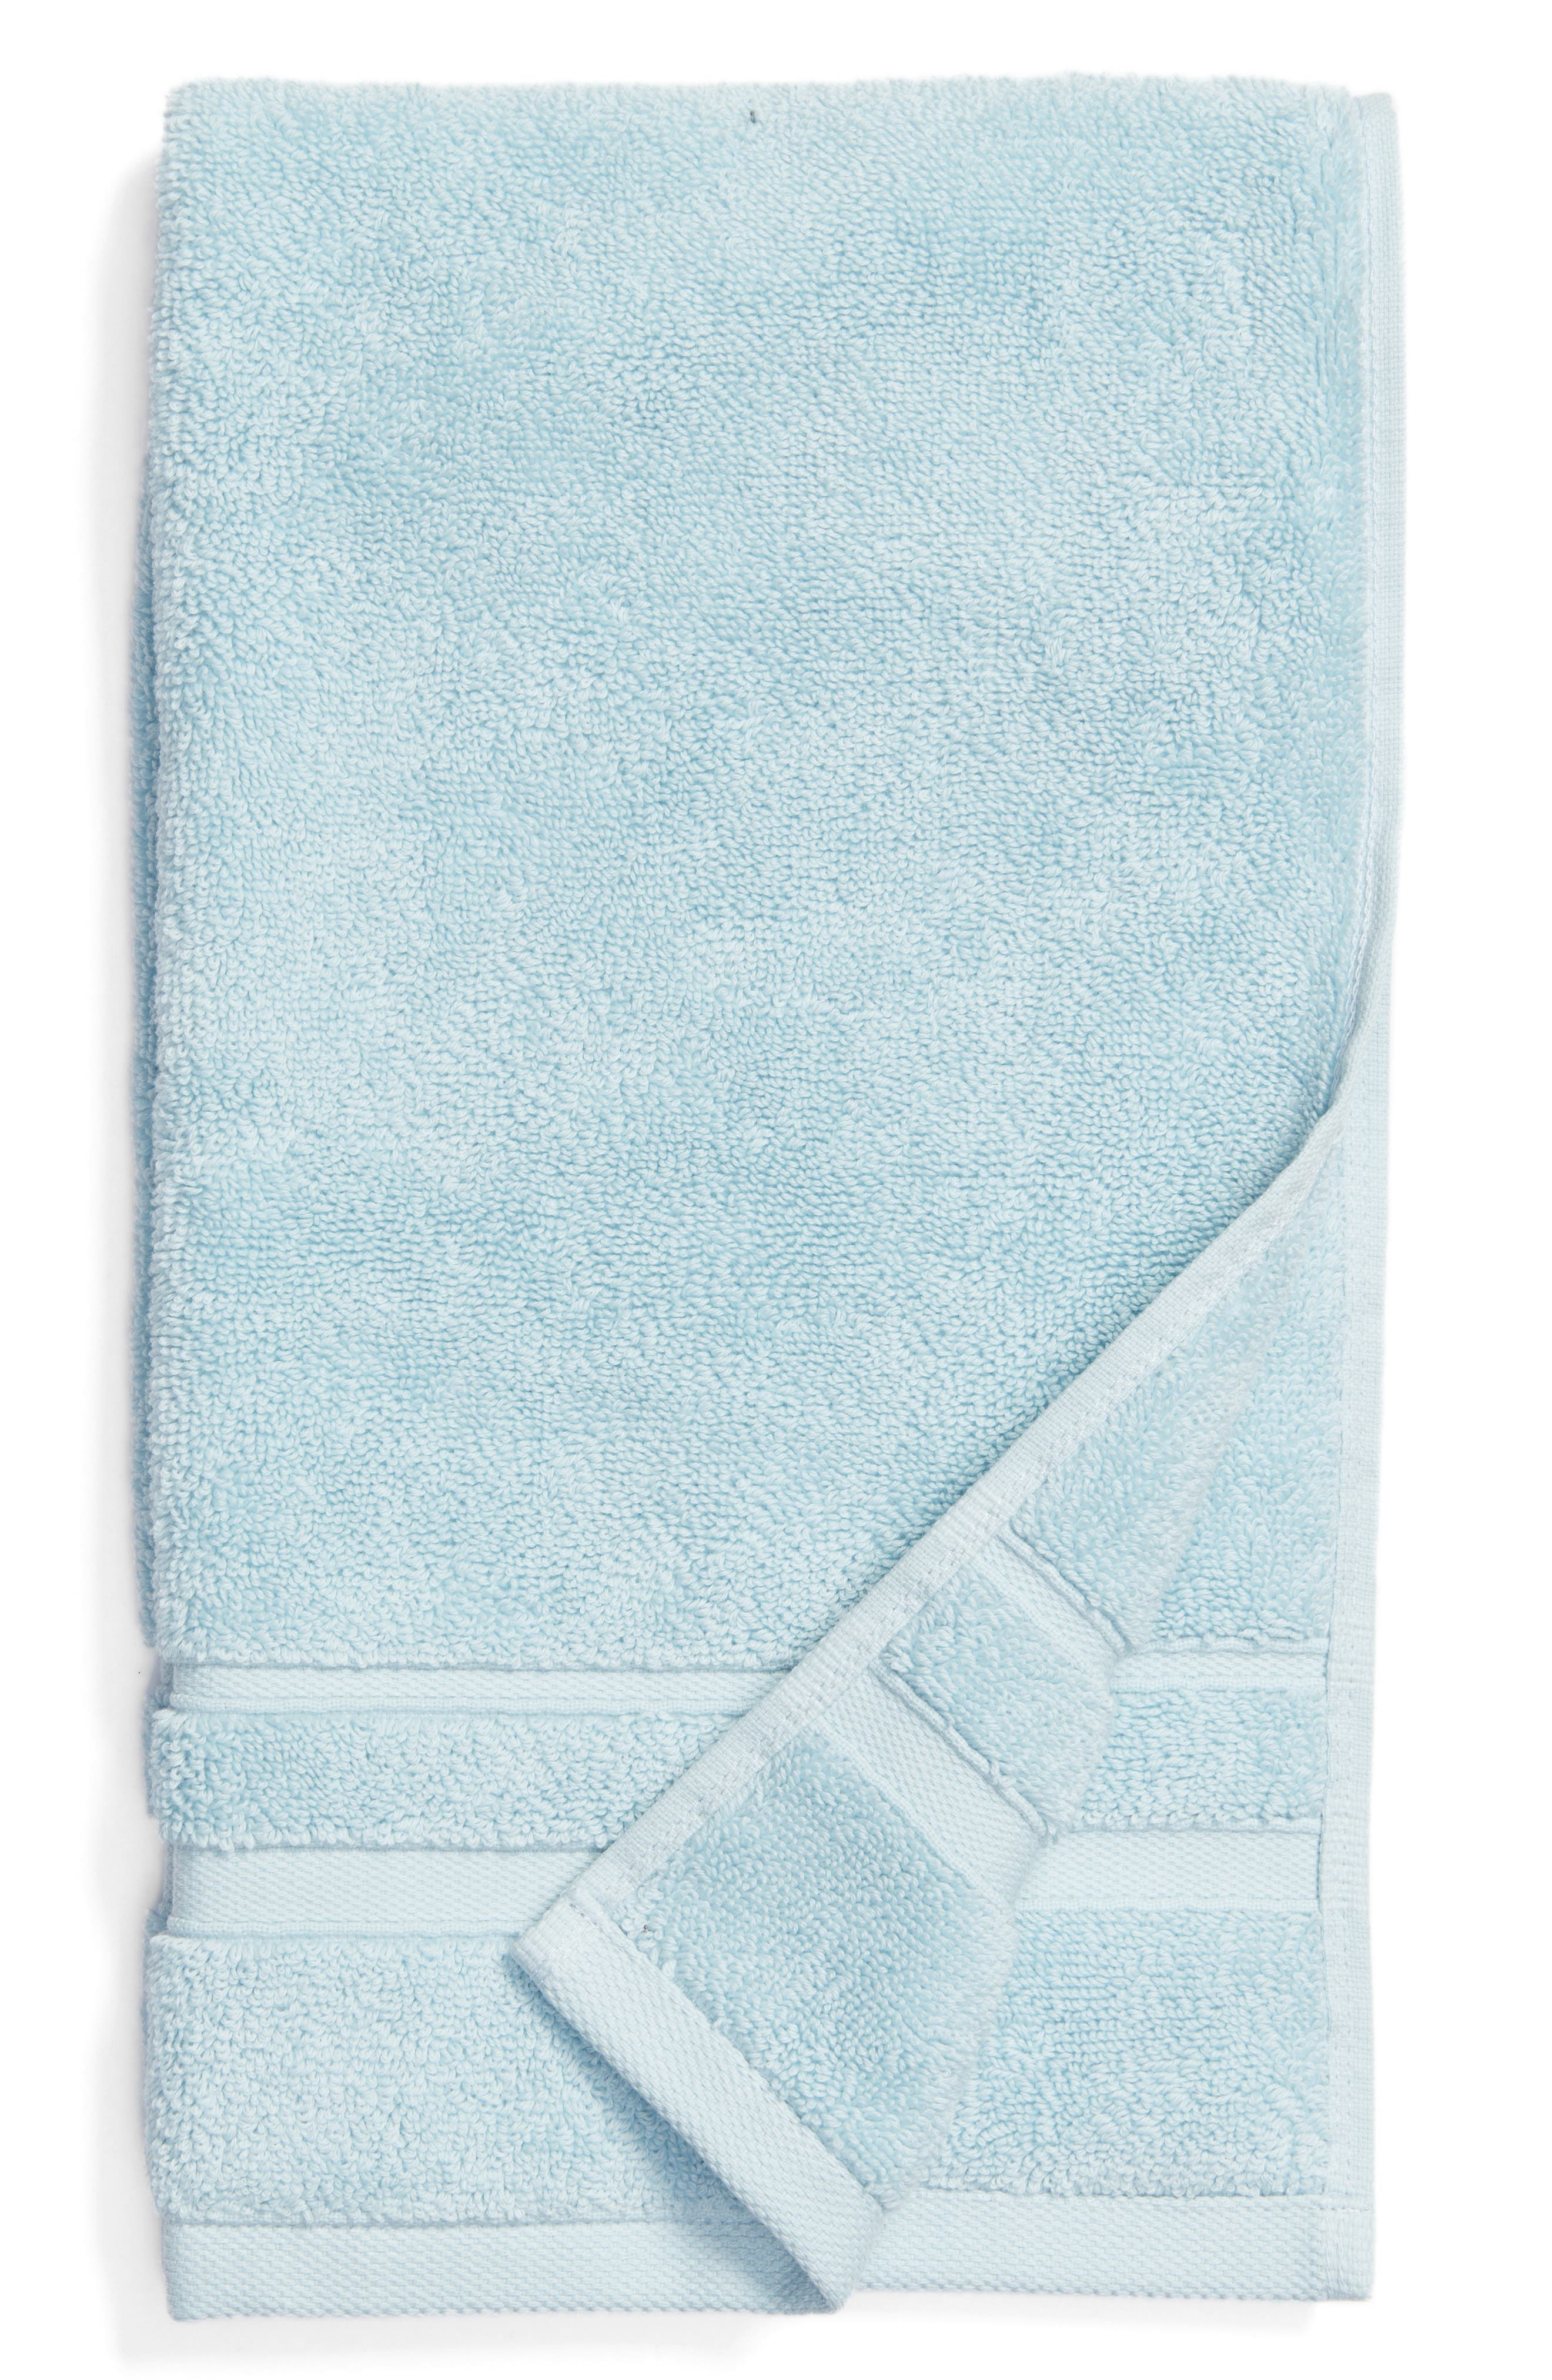 Studio 'Perennial' Combed Turkish Cotton Hand Towel,                         Main,                         color, CHRYSTAL BLUE